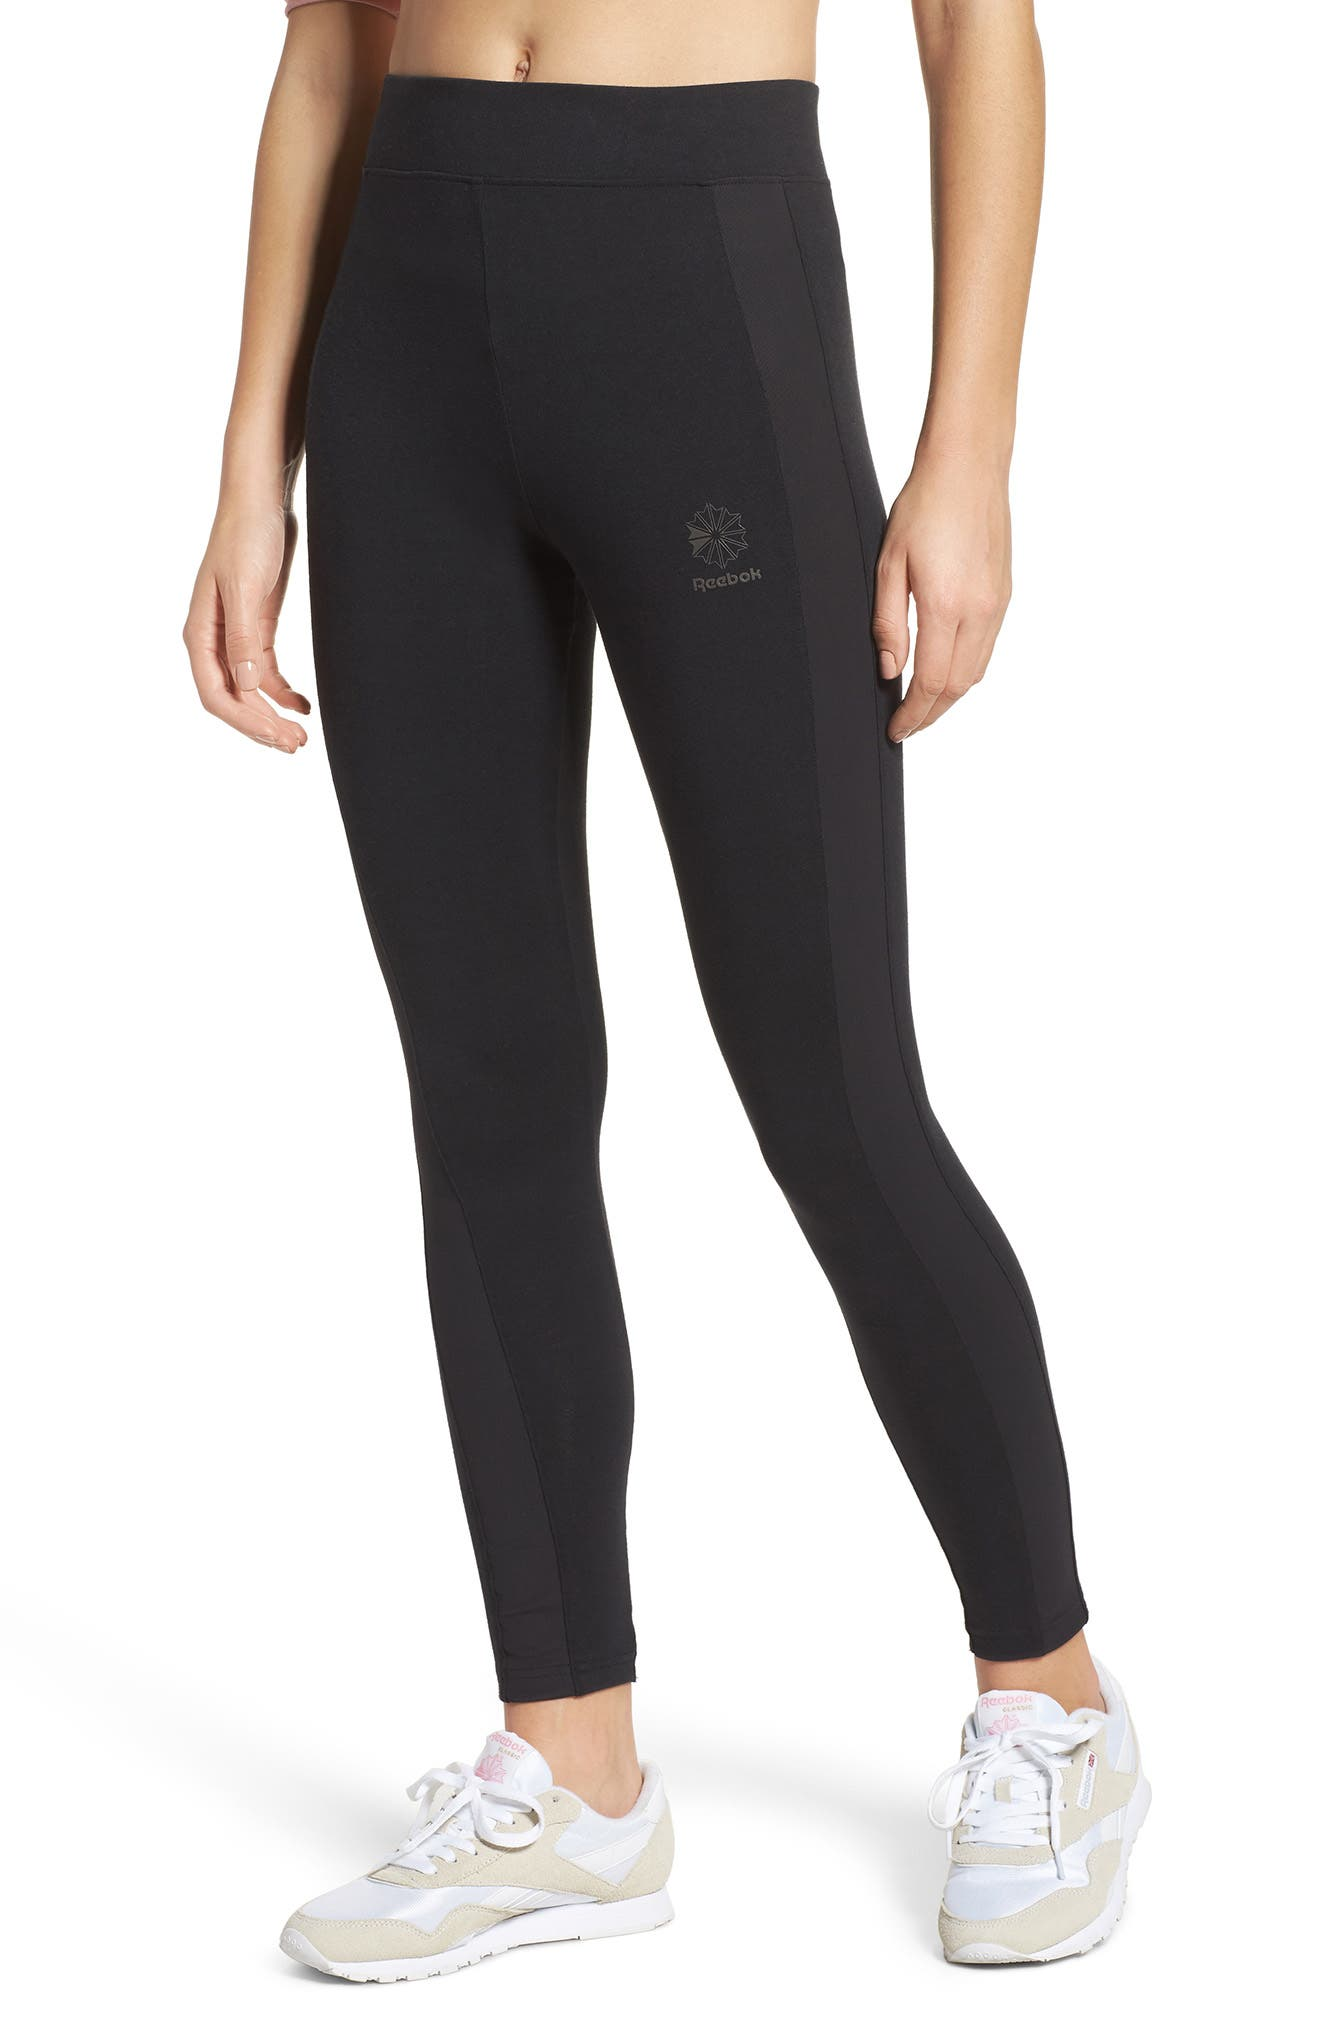 Reebok Dynamic Classic Leggings